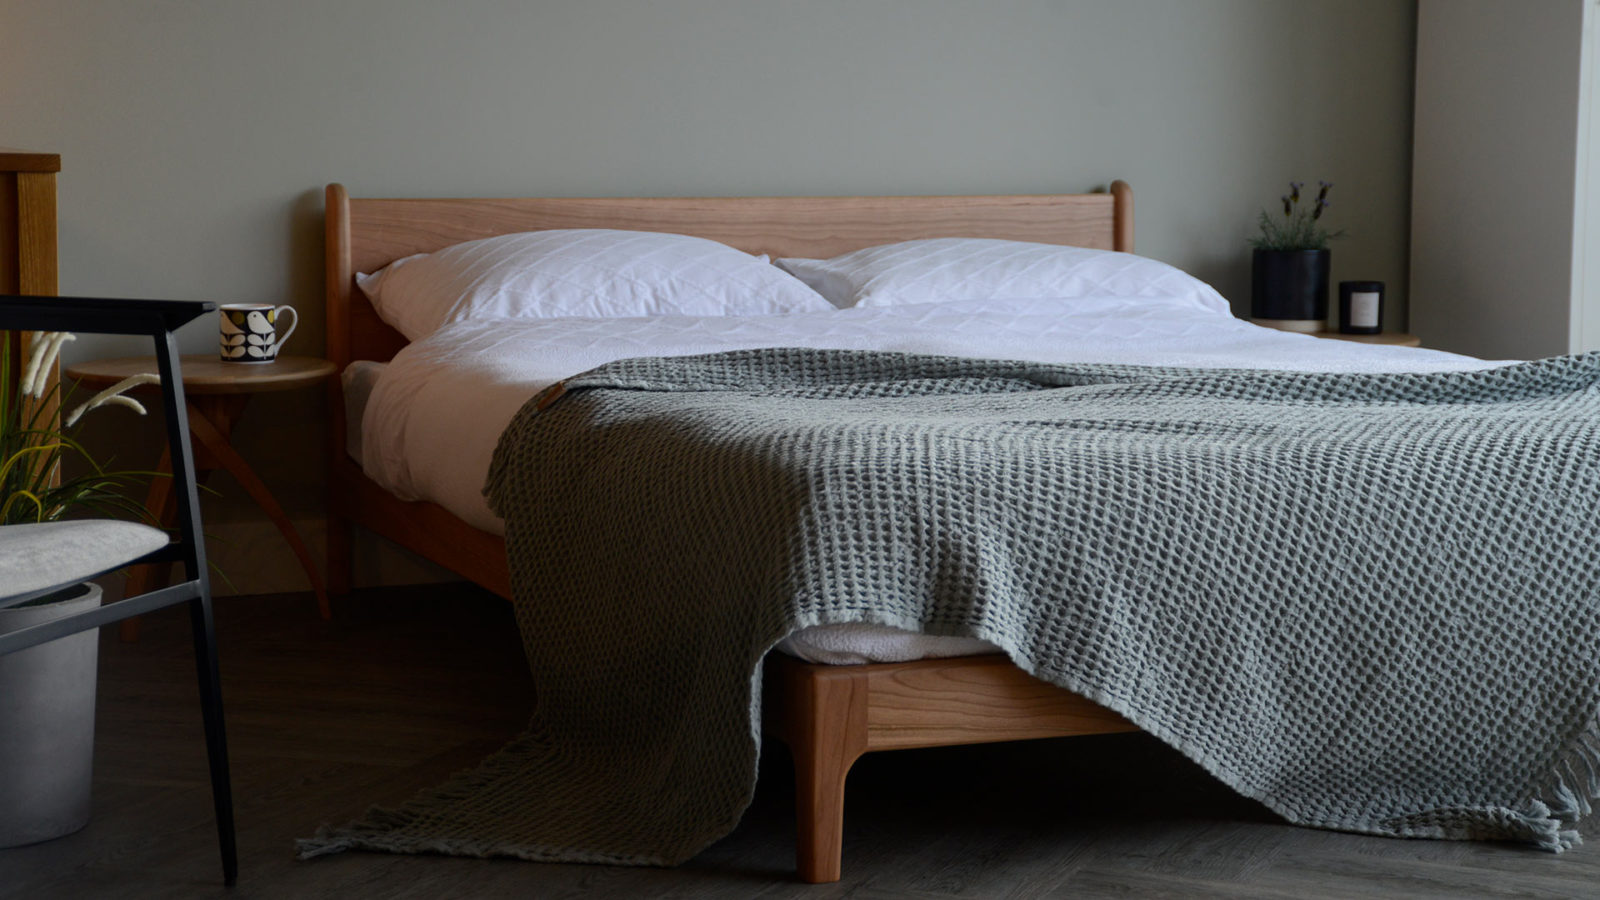 contemporary country bedroom look - solid cherry low wooden Pimlico bed and sage throw